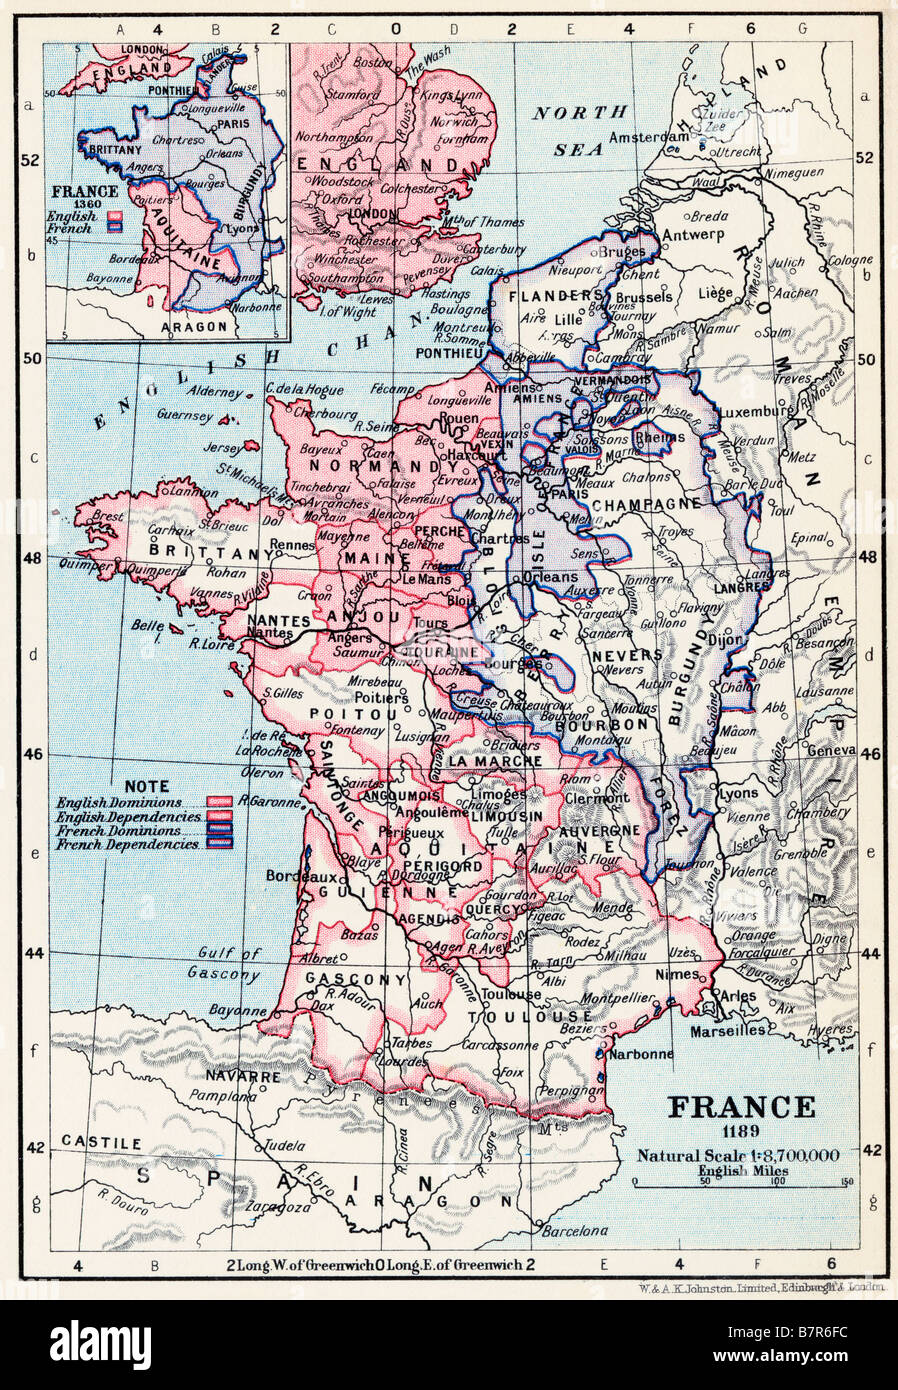 English Map Of France.France Map Stock Photos France Map Stock Images Alamy